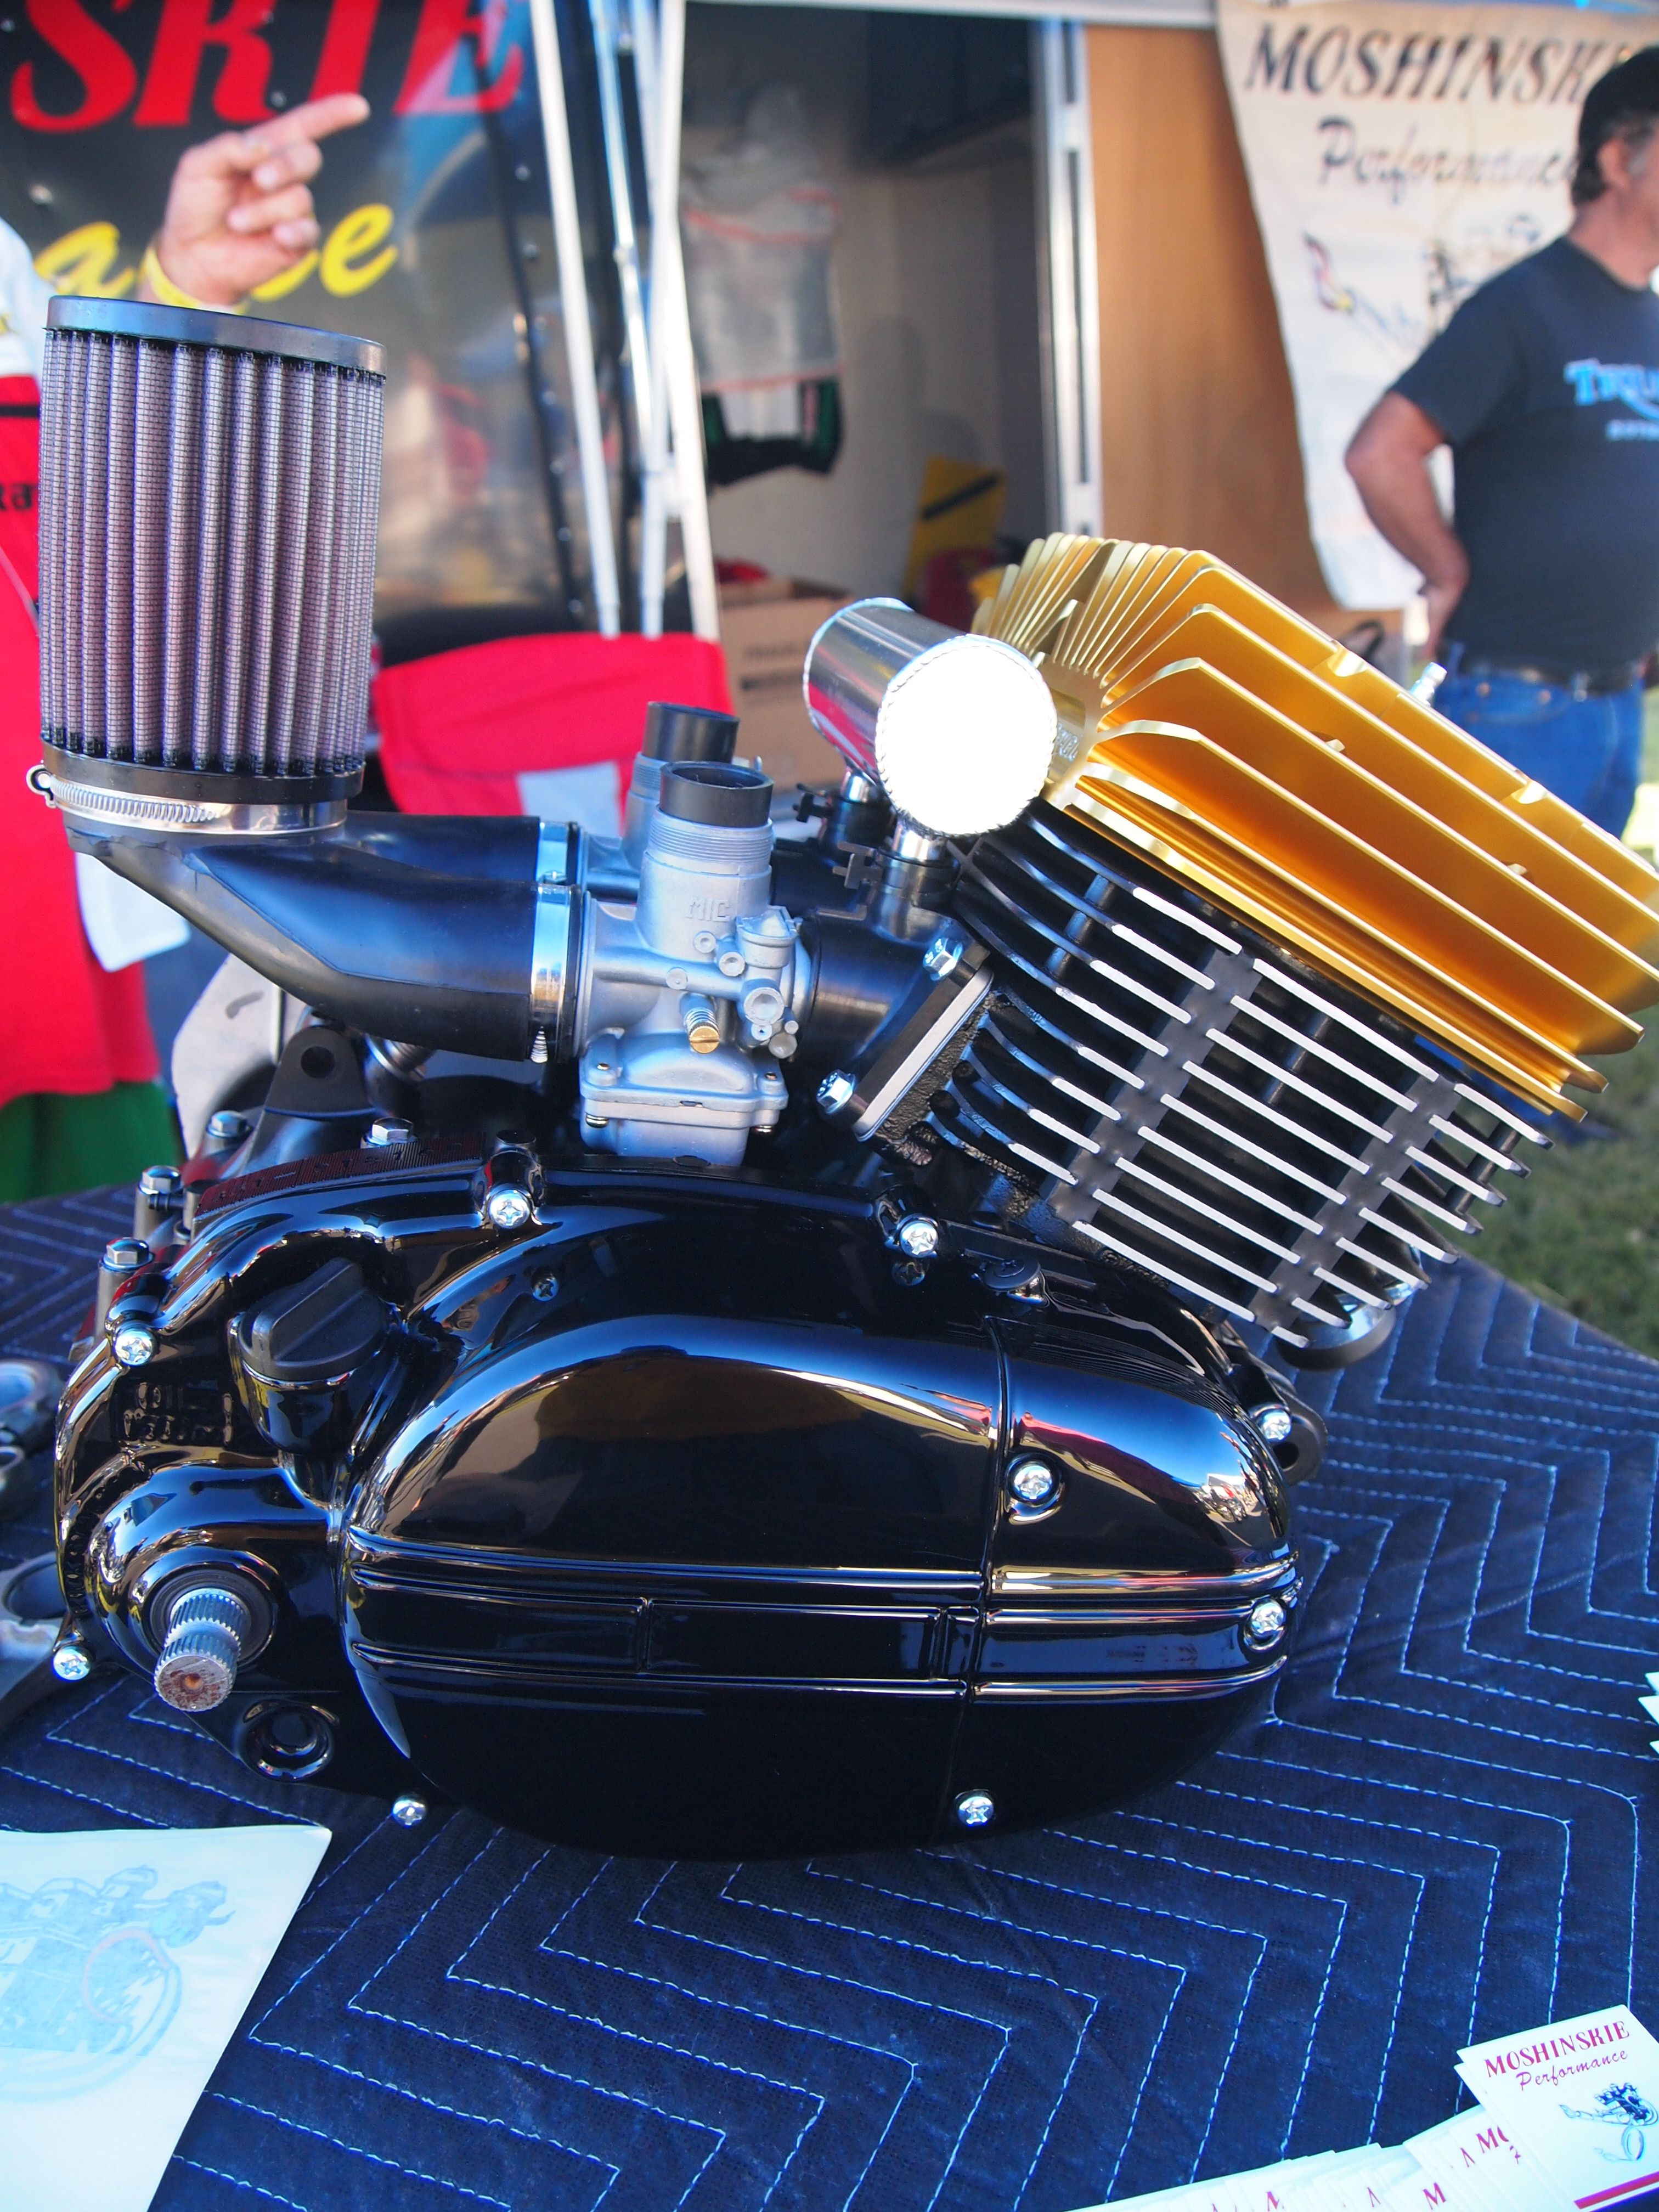 Barber Vintage Festival 2016 Motorcycles Oct16 Rd R5 72 Yamaha 2 Stroke 400 Wiring Diagram